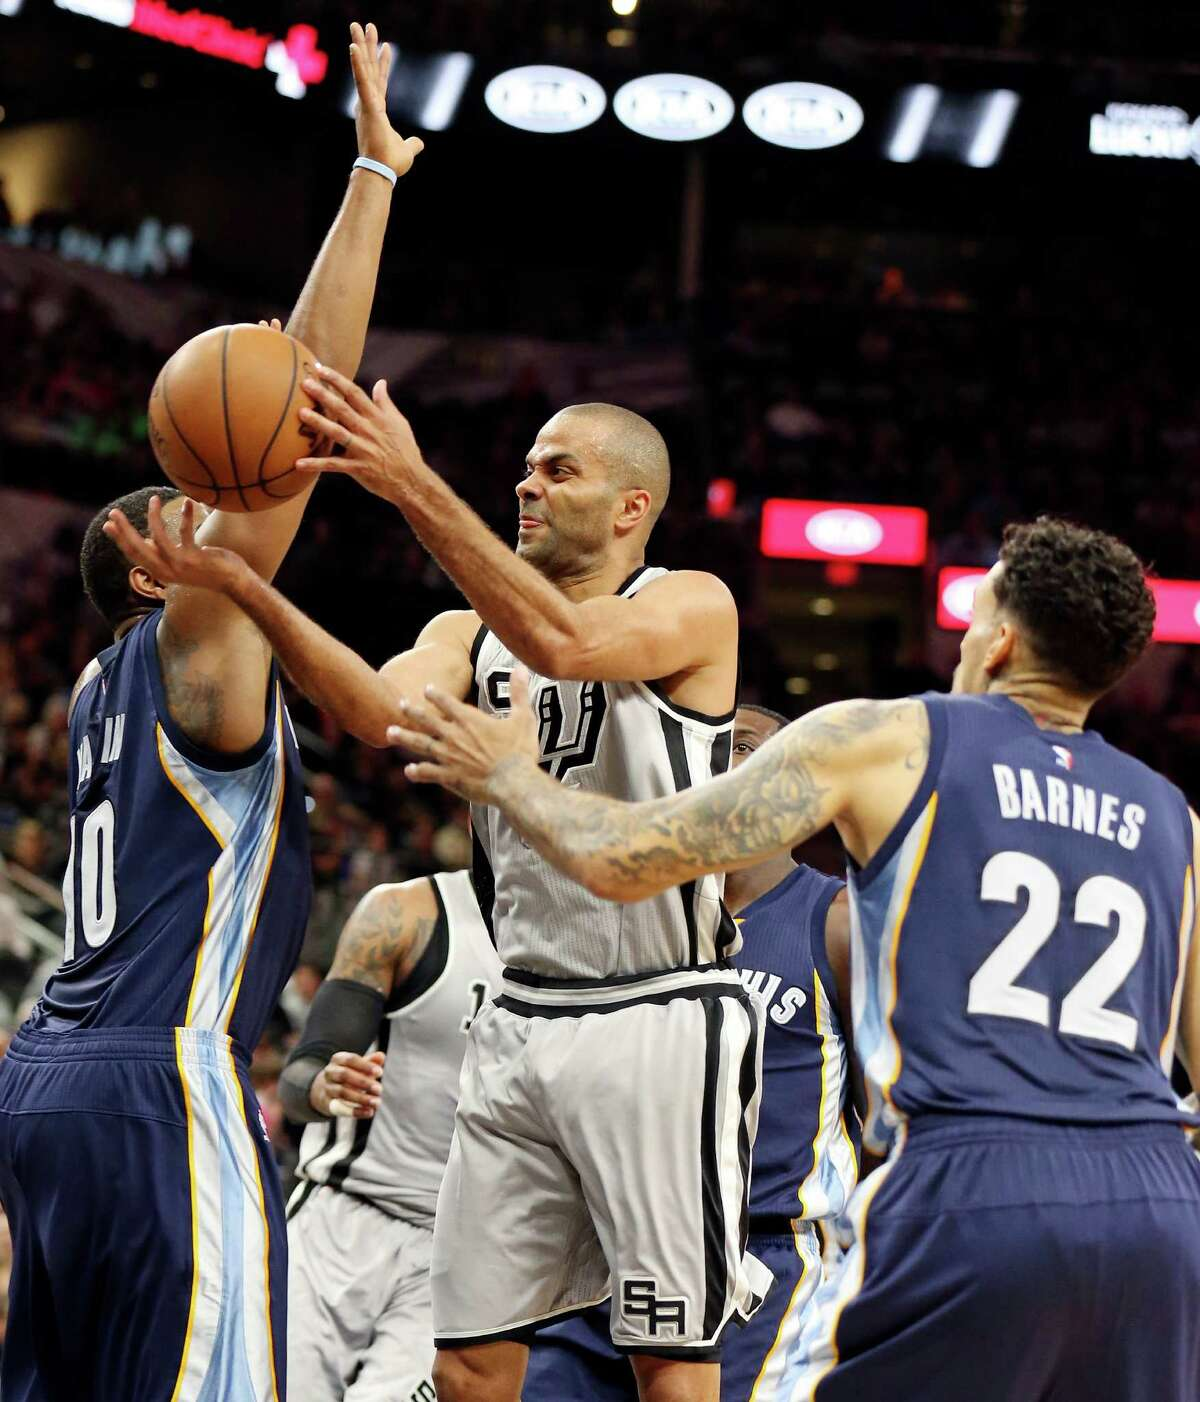 San Antonio Spurs' Tony Parker passes between Memphis Grizzlies' Jarell Martin (left) and Matt Barnes during first half action of Game 1 in the first round of the Western Conference playoffs Sunday April 17, 2016 at the AT&T Center.